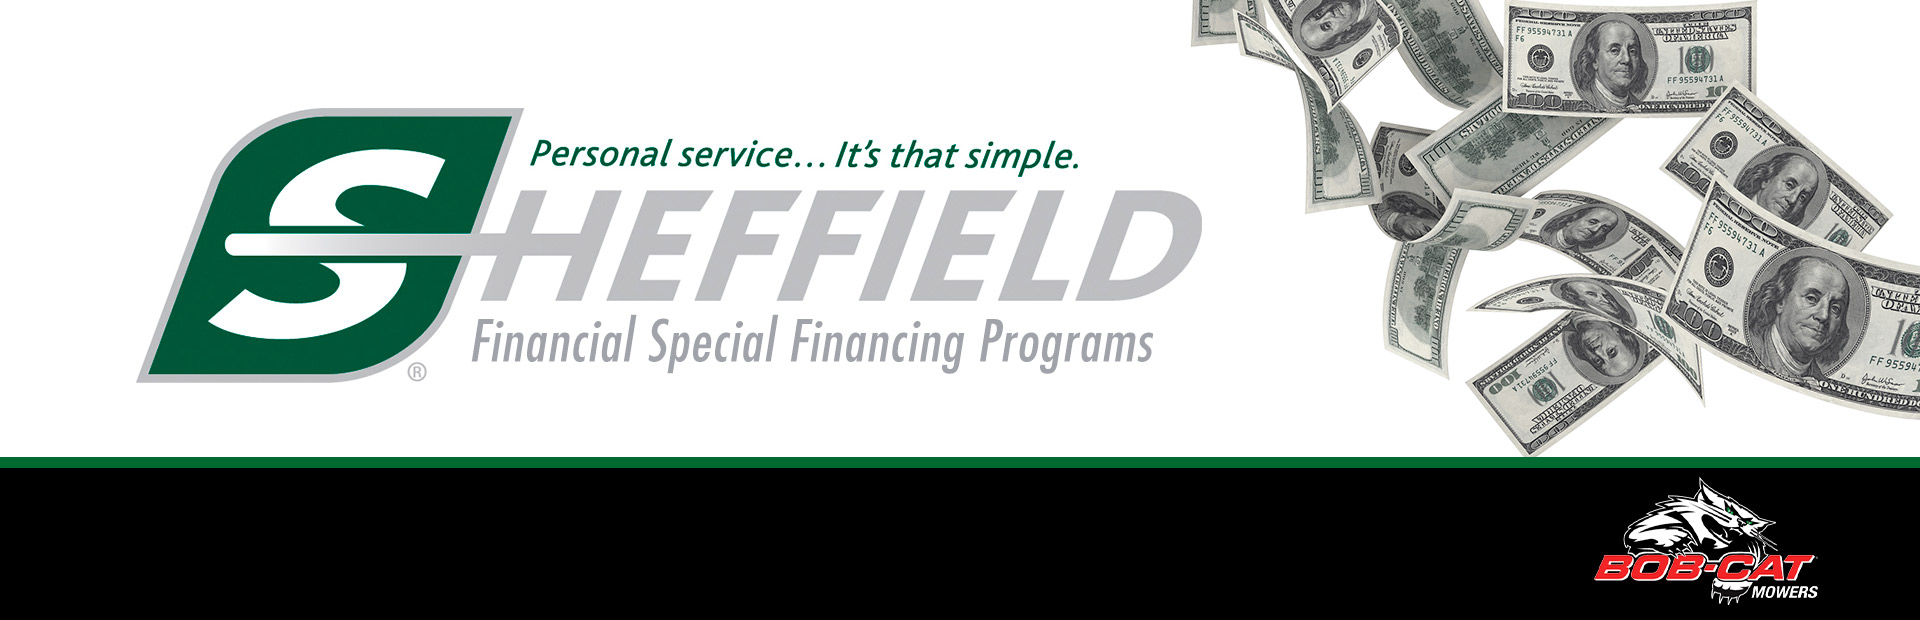 BOB-CAT®: Sheffield Retail Financing Programs